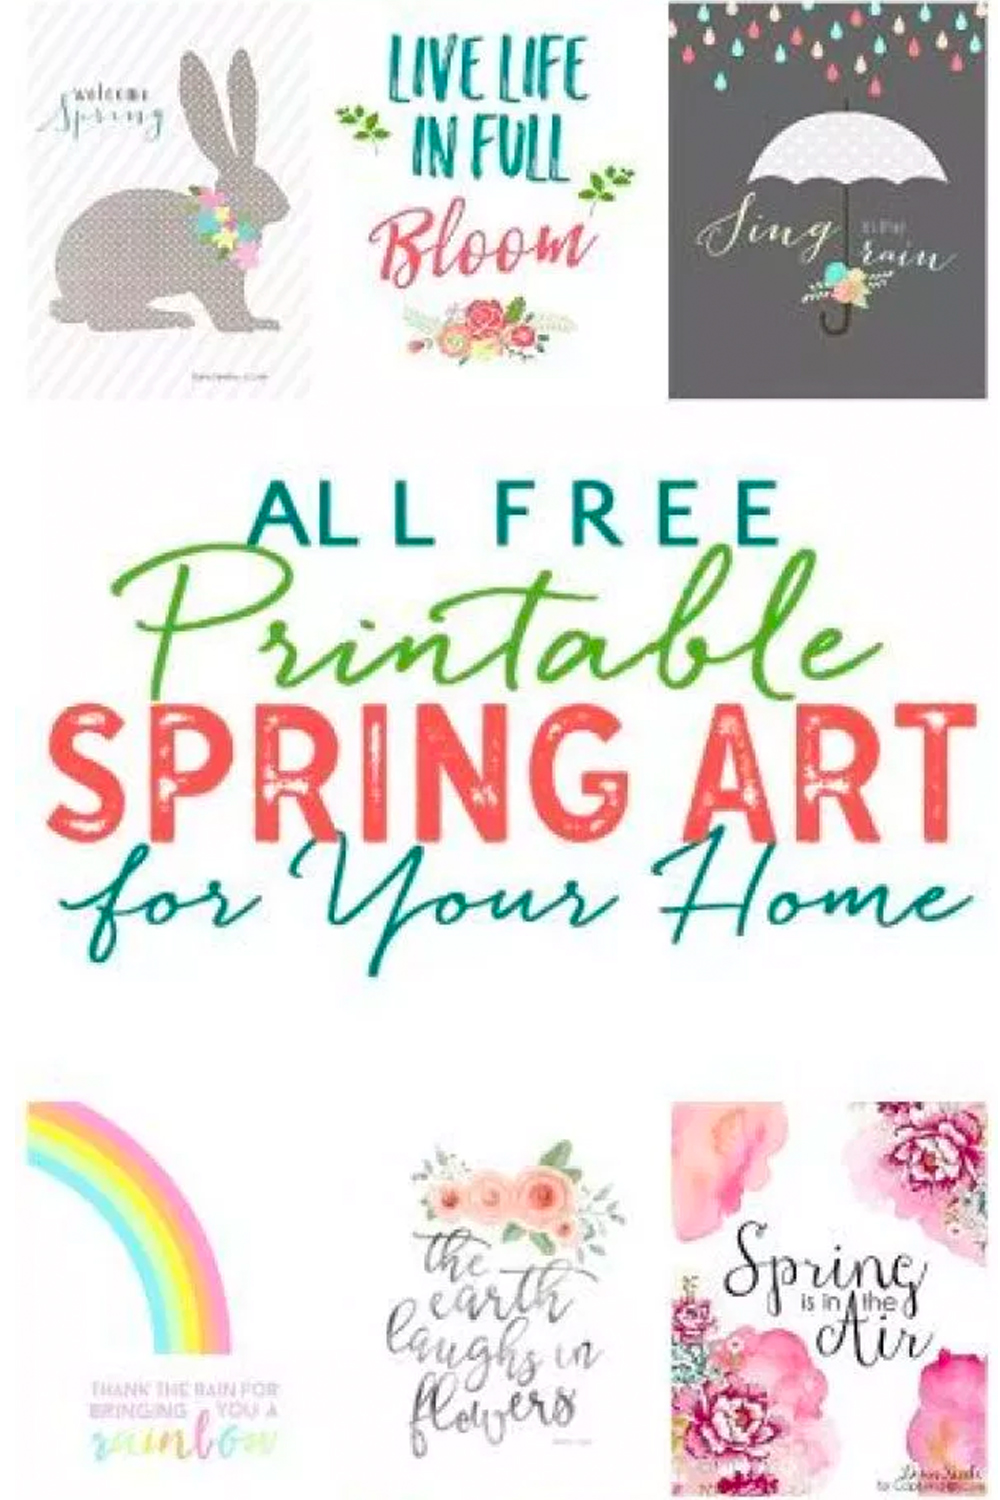 image regarding Printable Spring Pictures called Extremely Free of charge Spring Printables: Spring Artwork For Your House